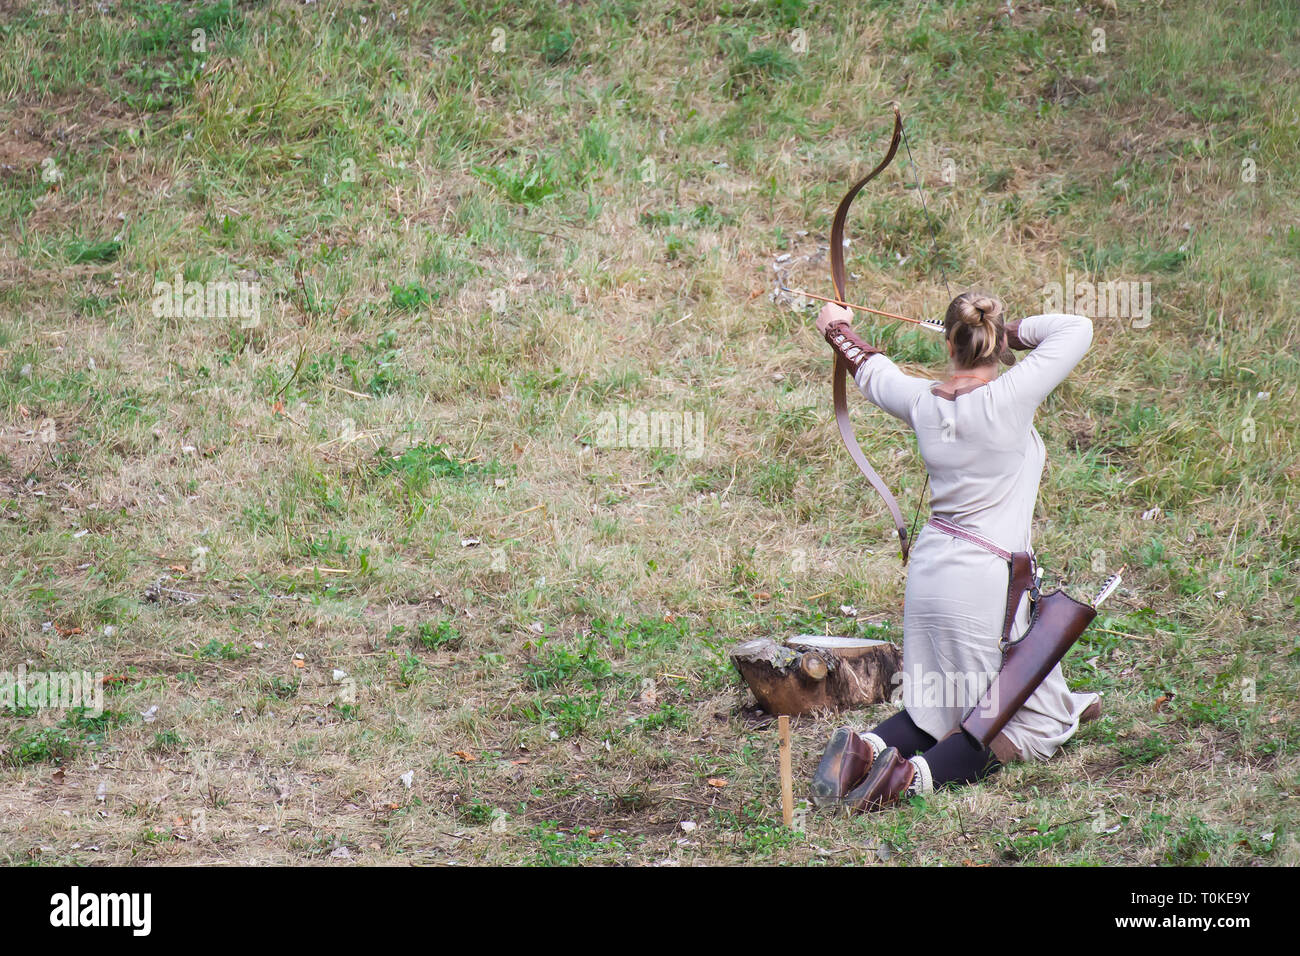 Slavic archer female aiming the target - Stock Image